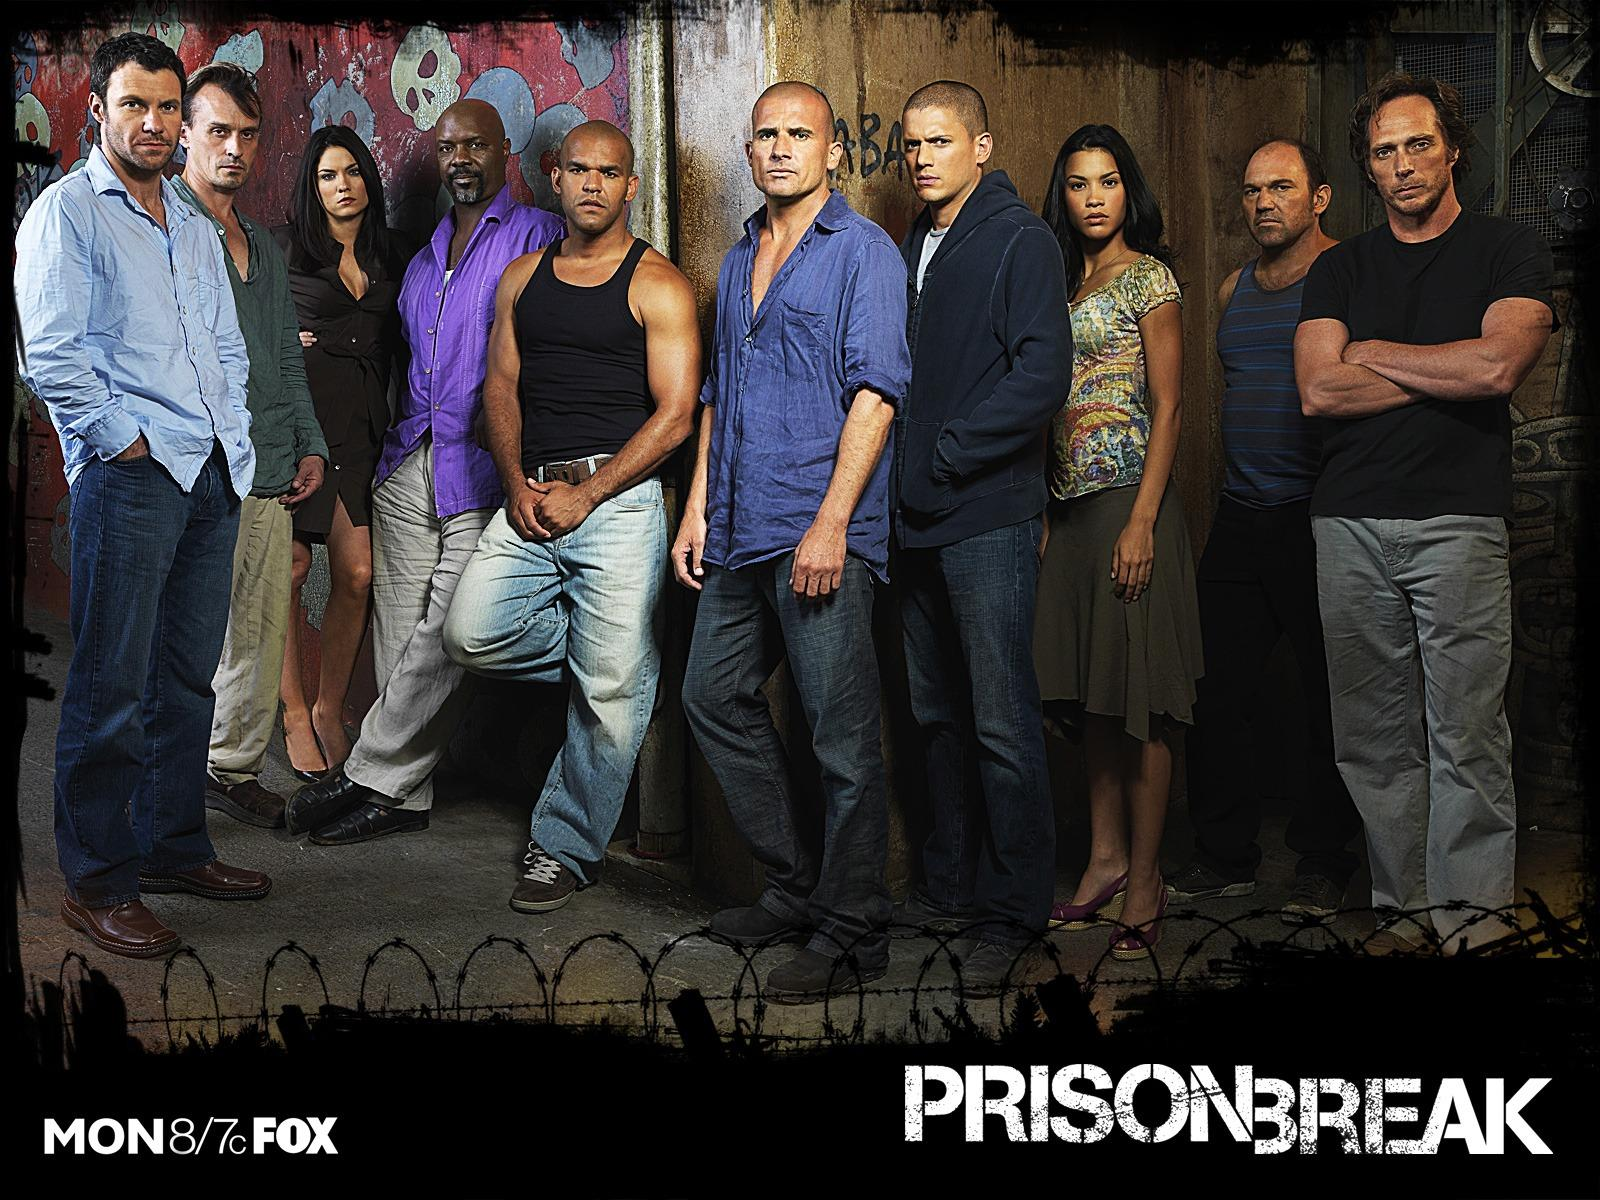 Prison Break Wallpaper Free Wallpaper Downloads Amazing Pictures